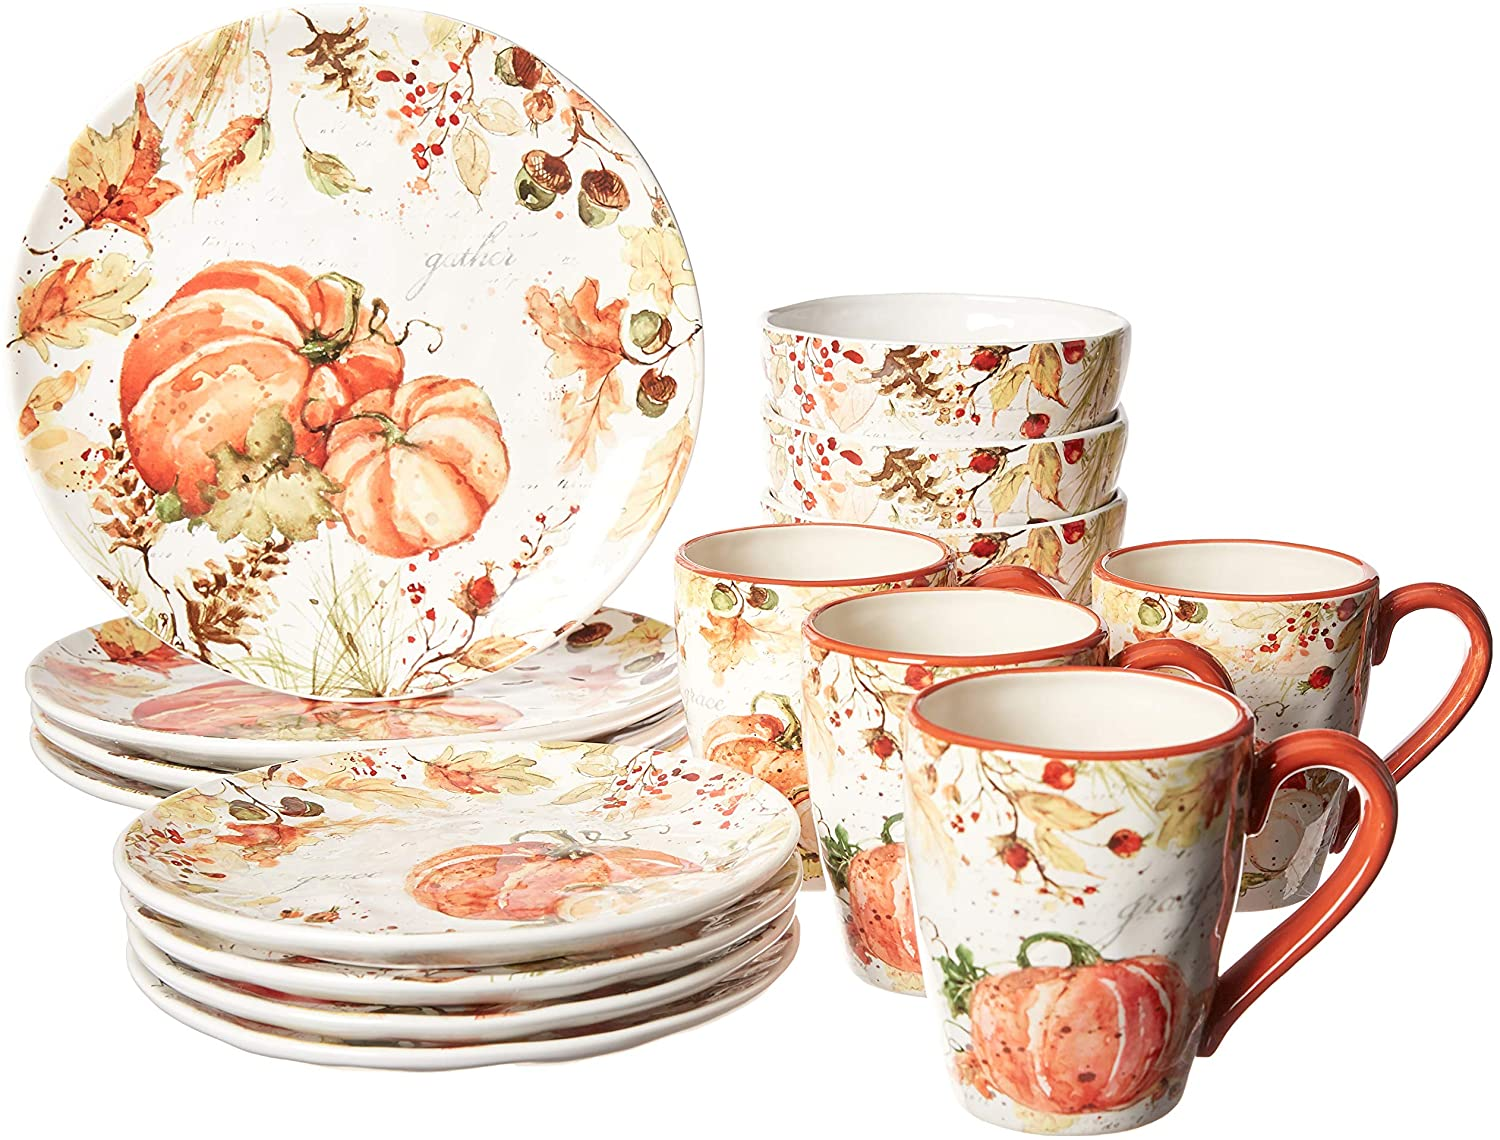 Harvest Splash Dinnerware